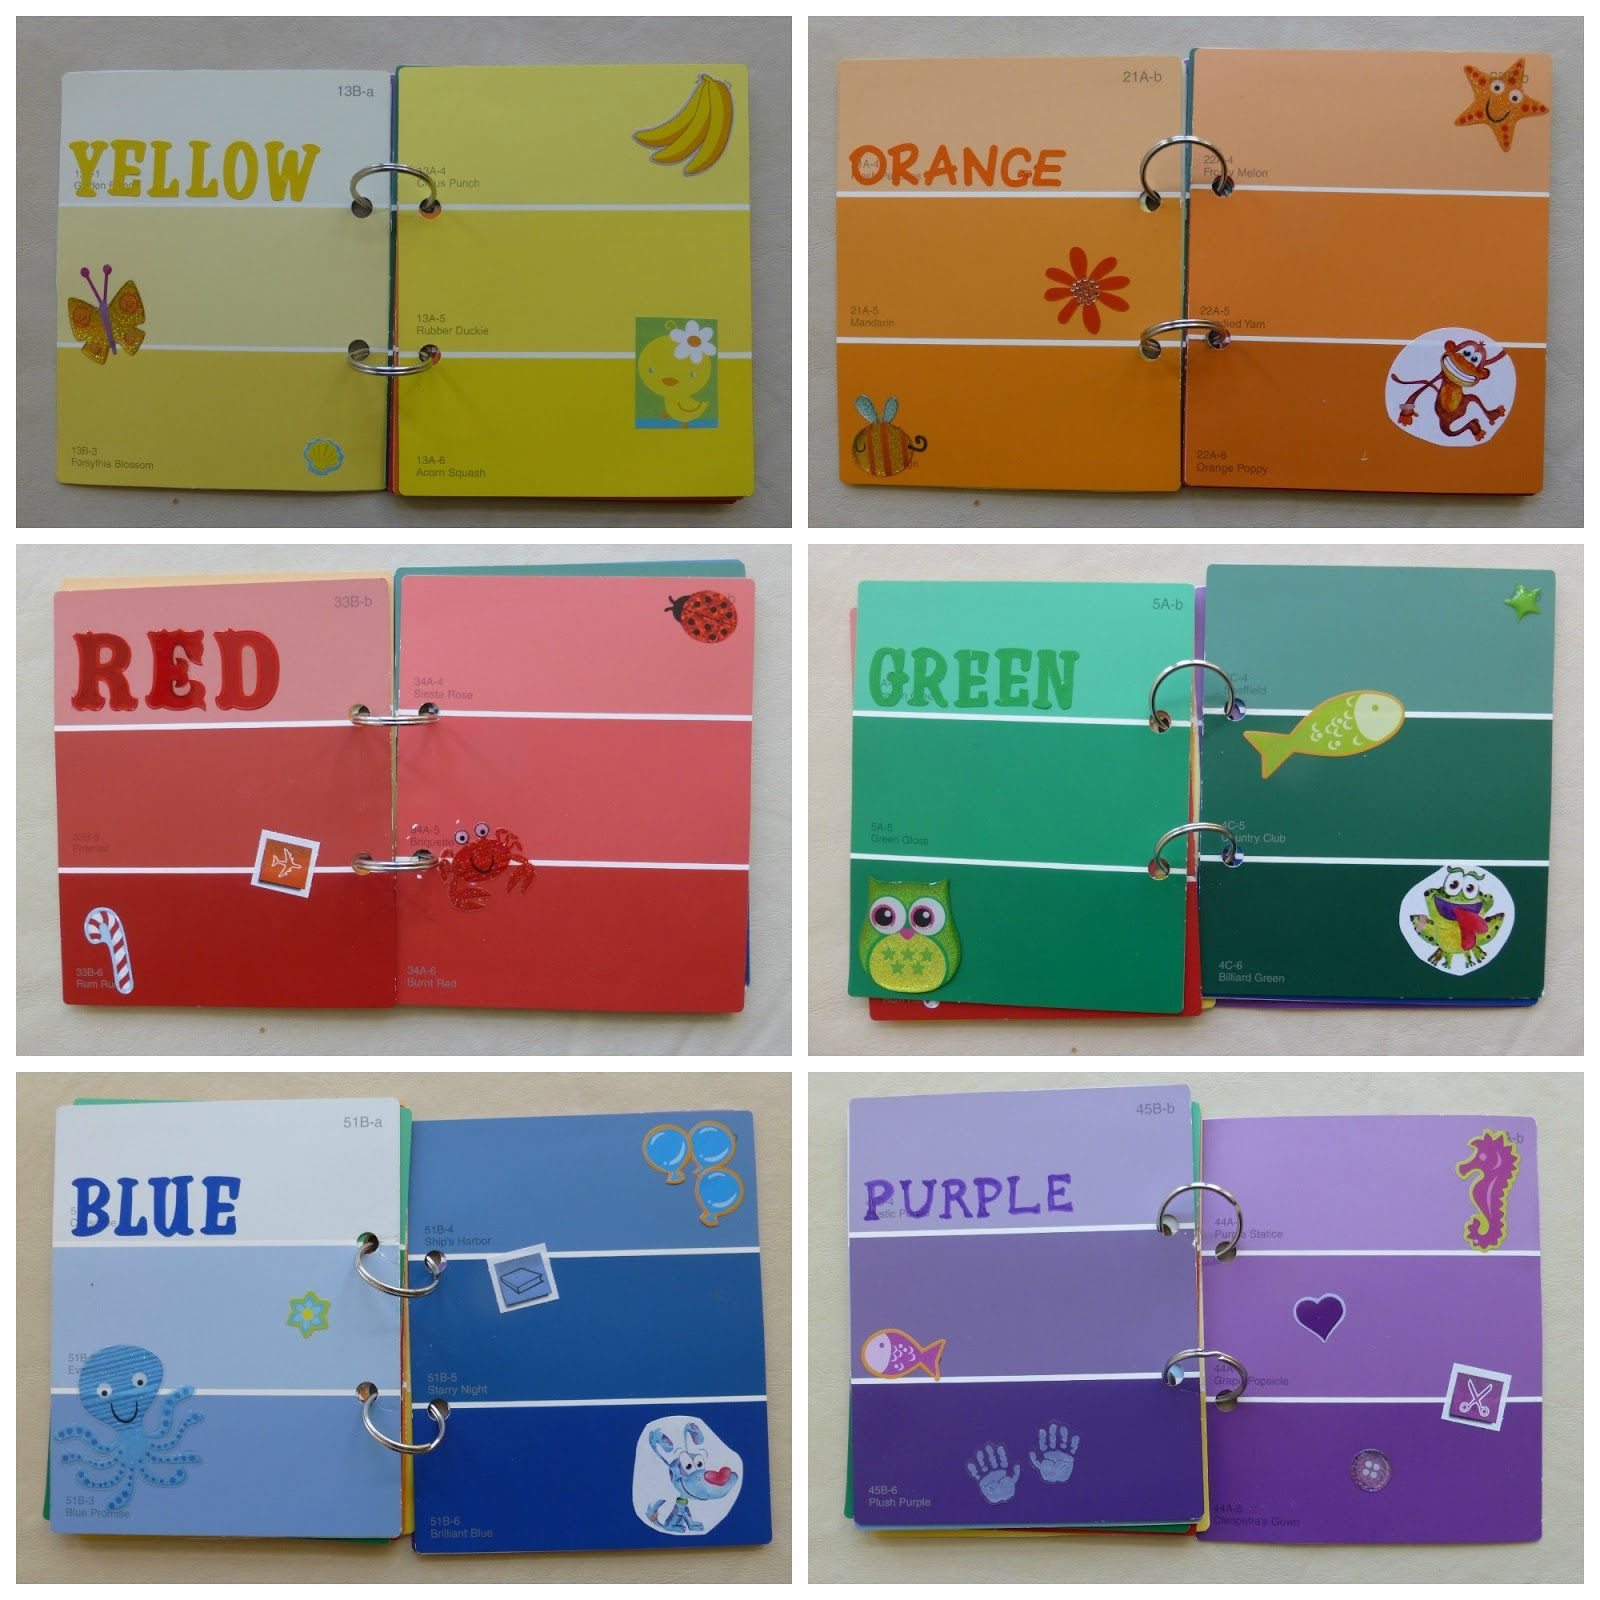 Paint Sample Color Books Teach Colors And That There Are Different Shades Of Each Color Teaching Colors Learning Colors Teaching Toddlers